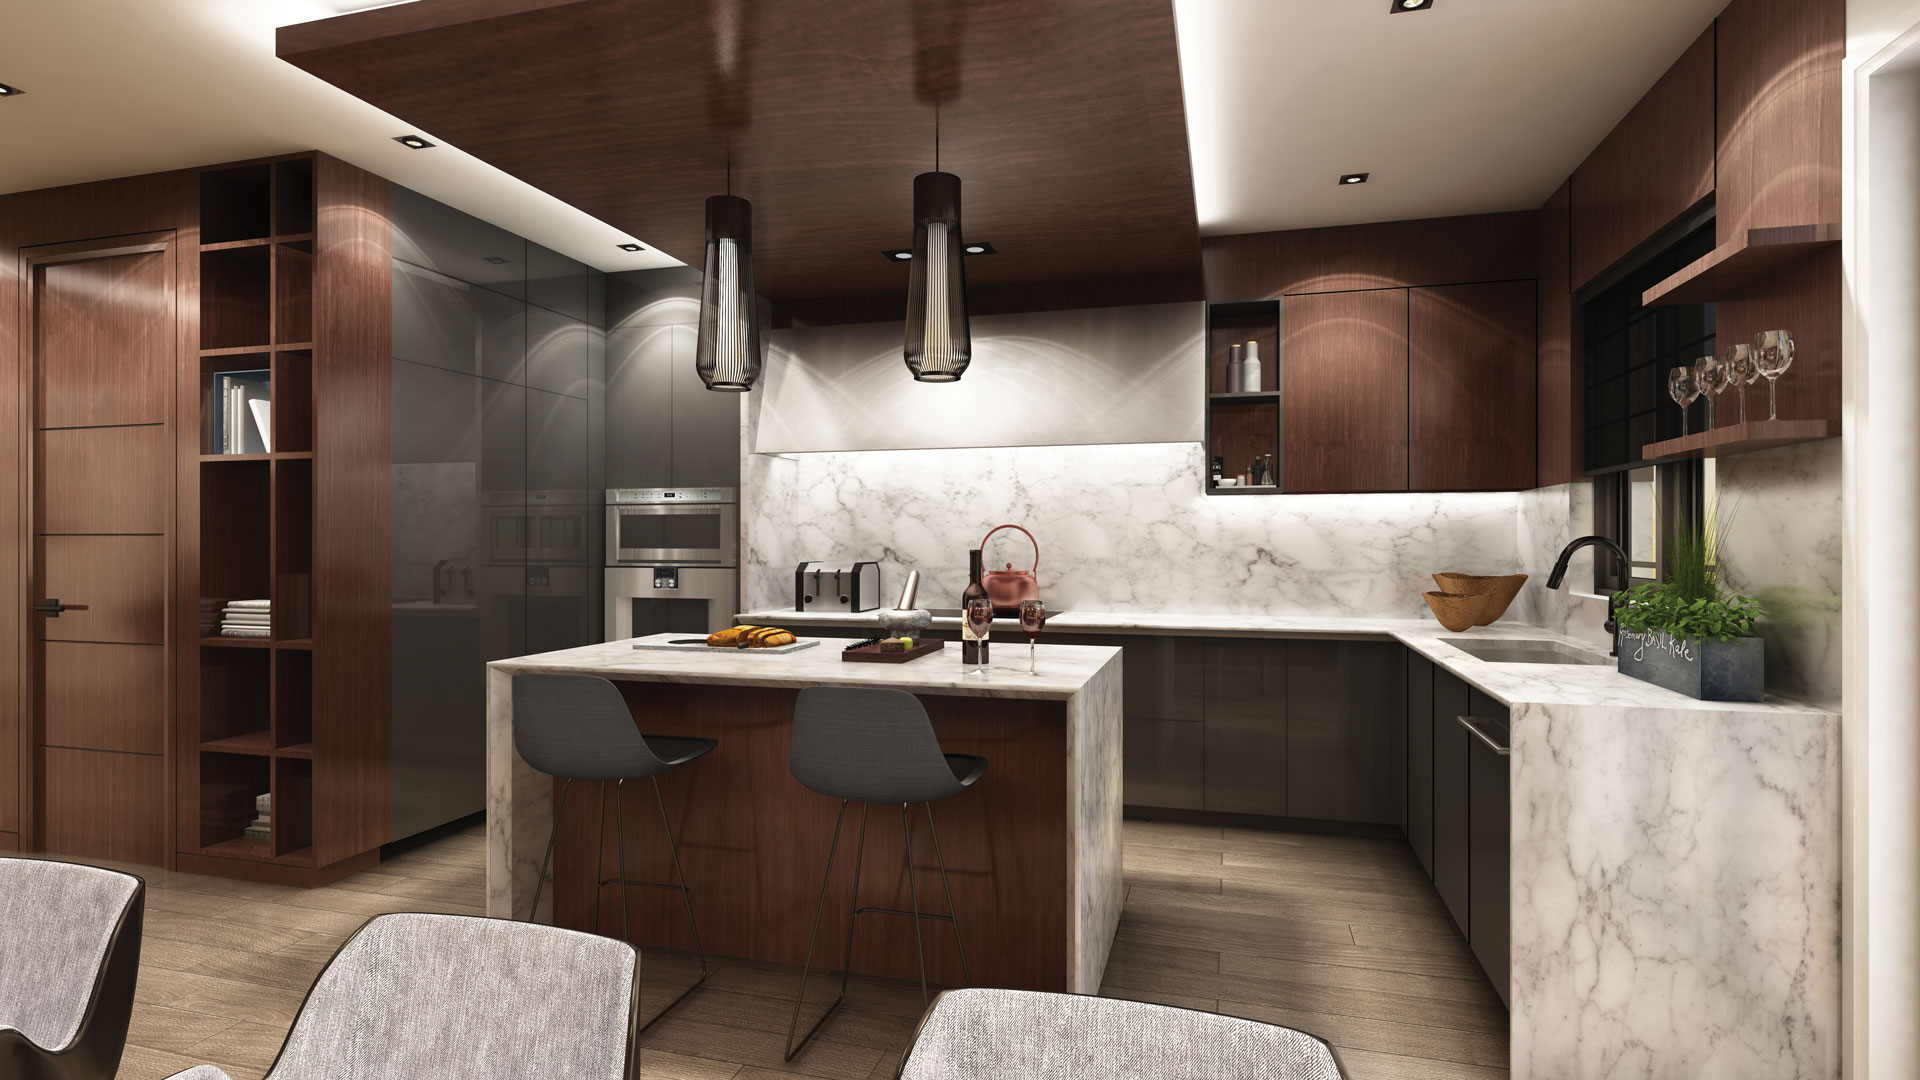 galley-luxe-11-f.jpg